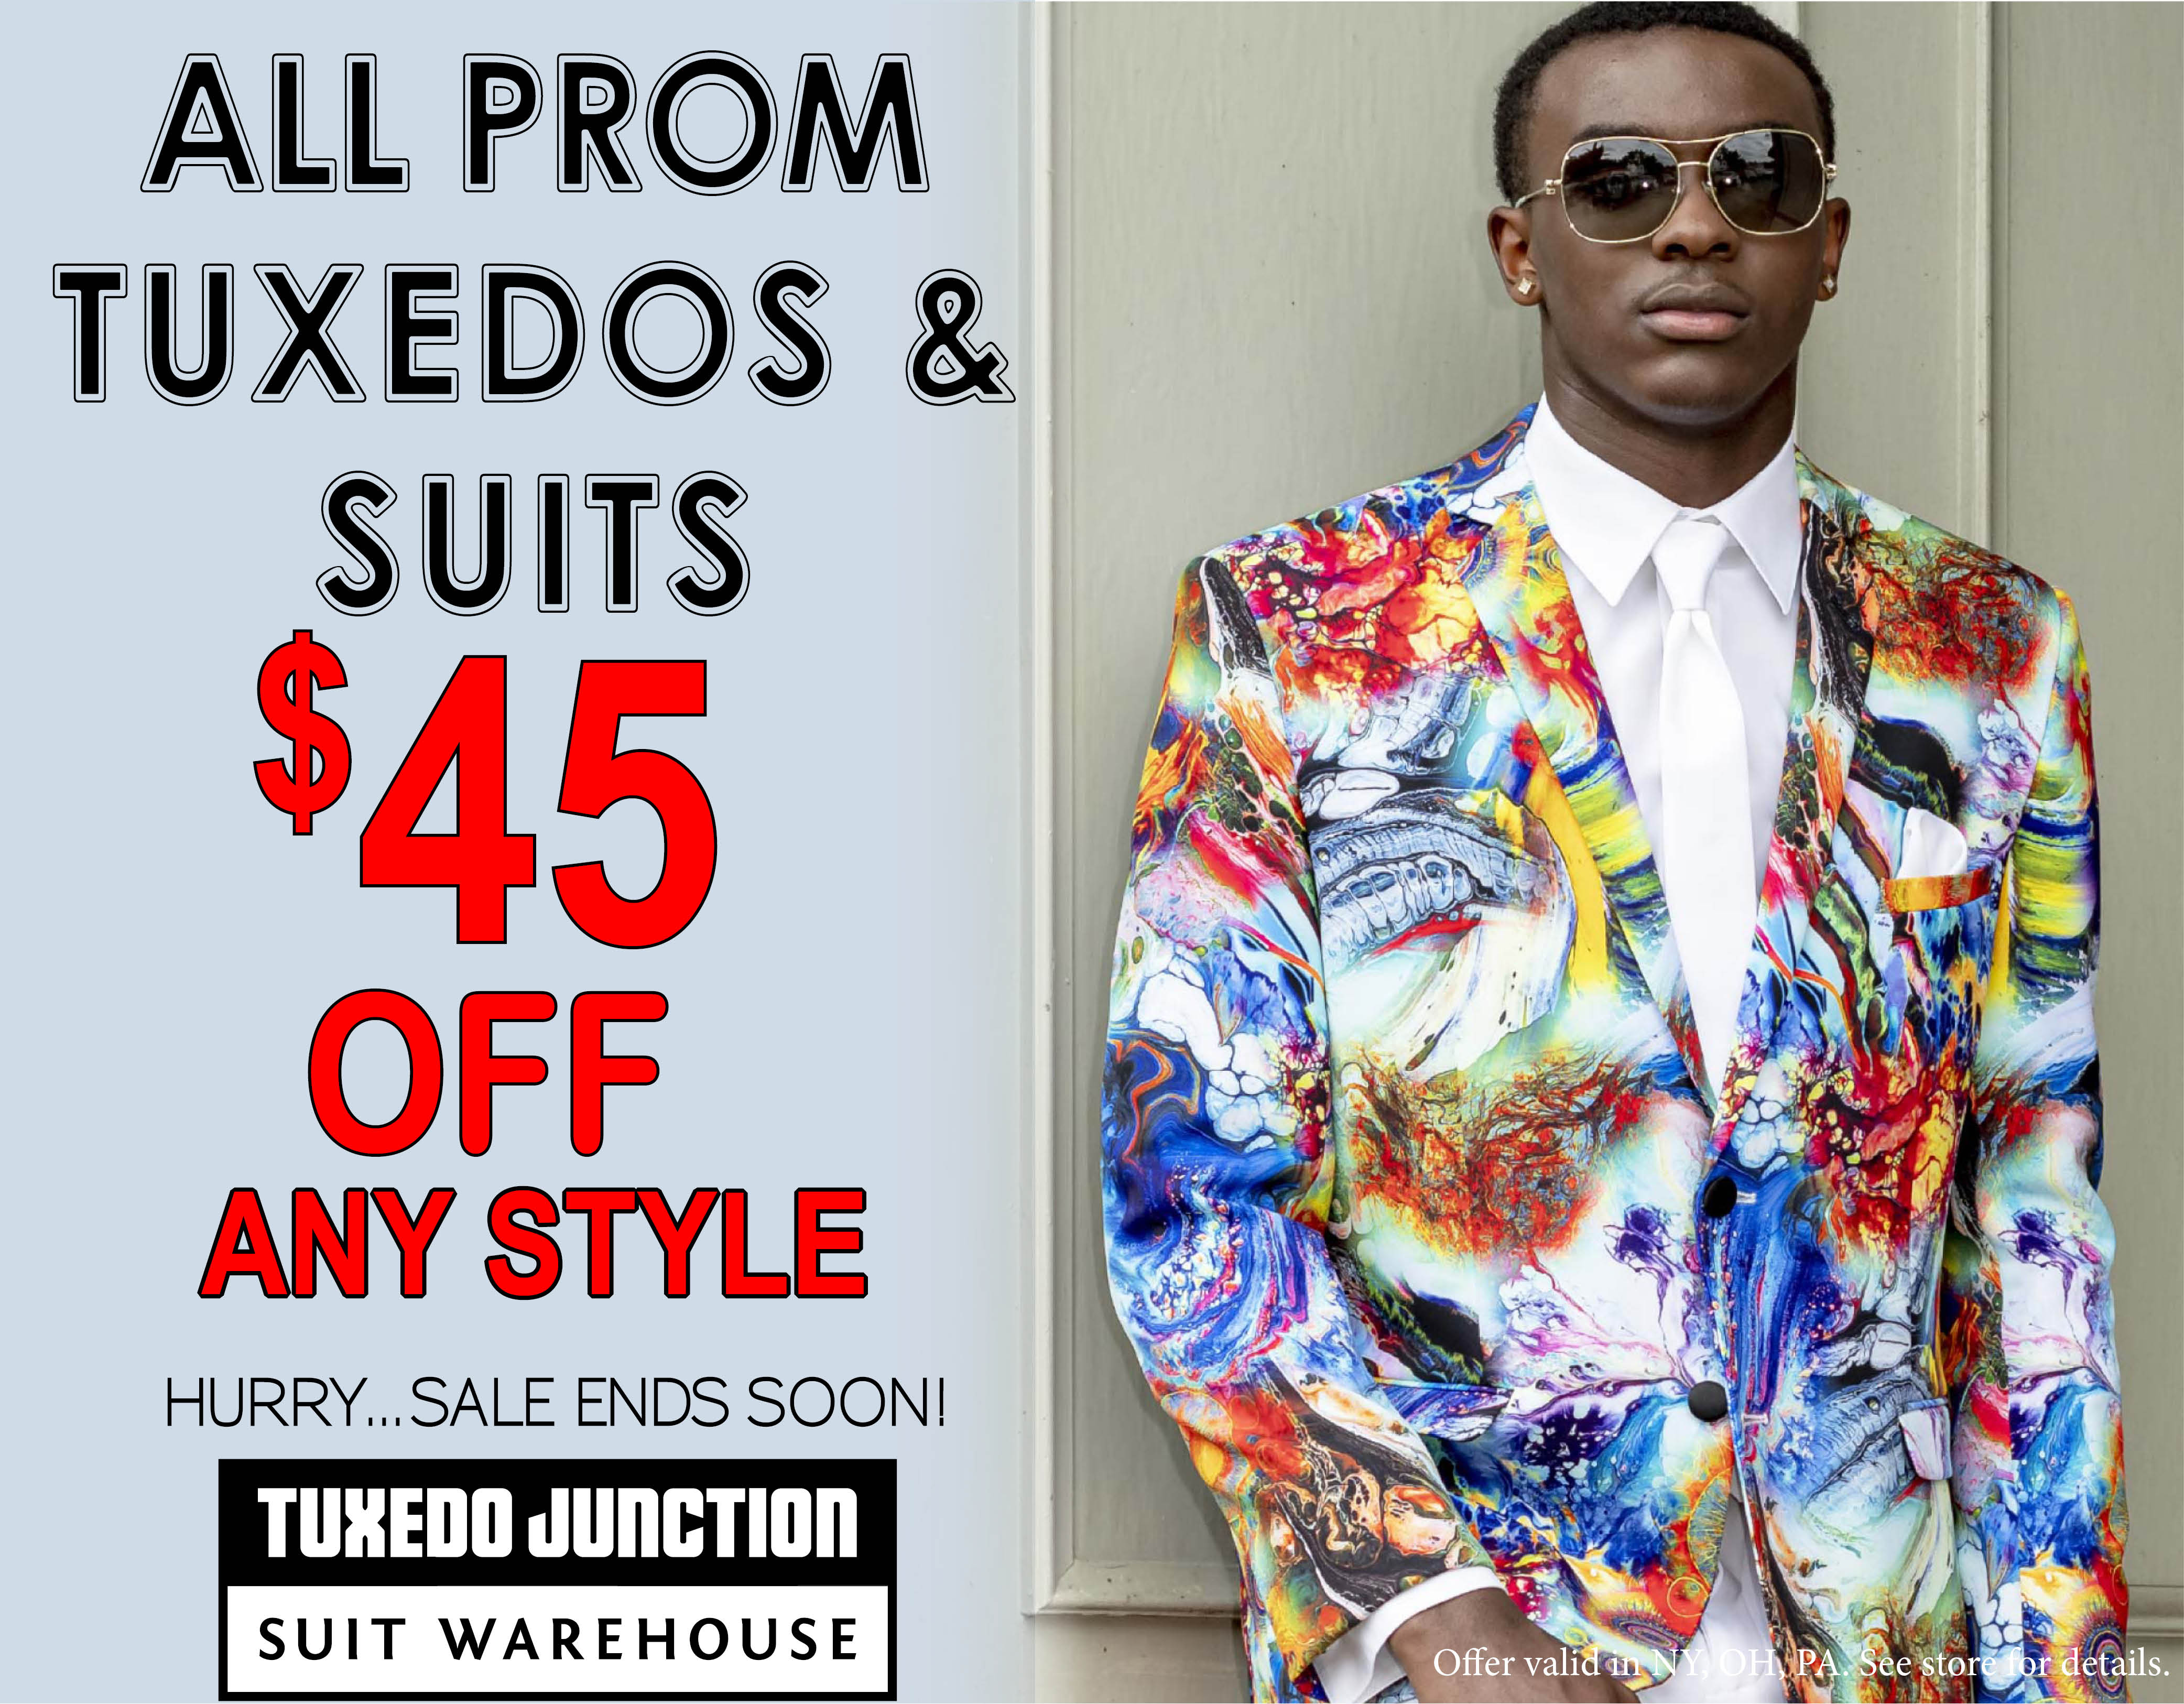 All prom tuxedos and suits $45 off any style - hurry sale ends soon